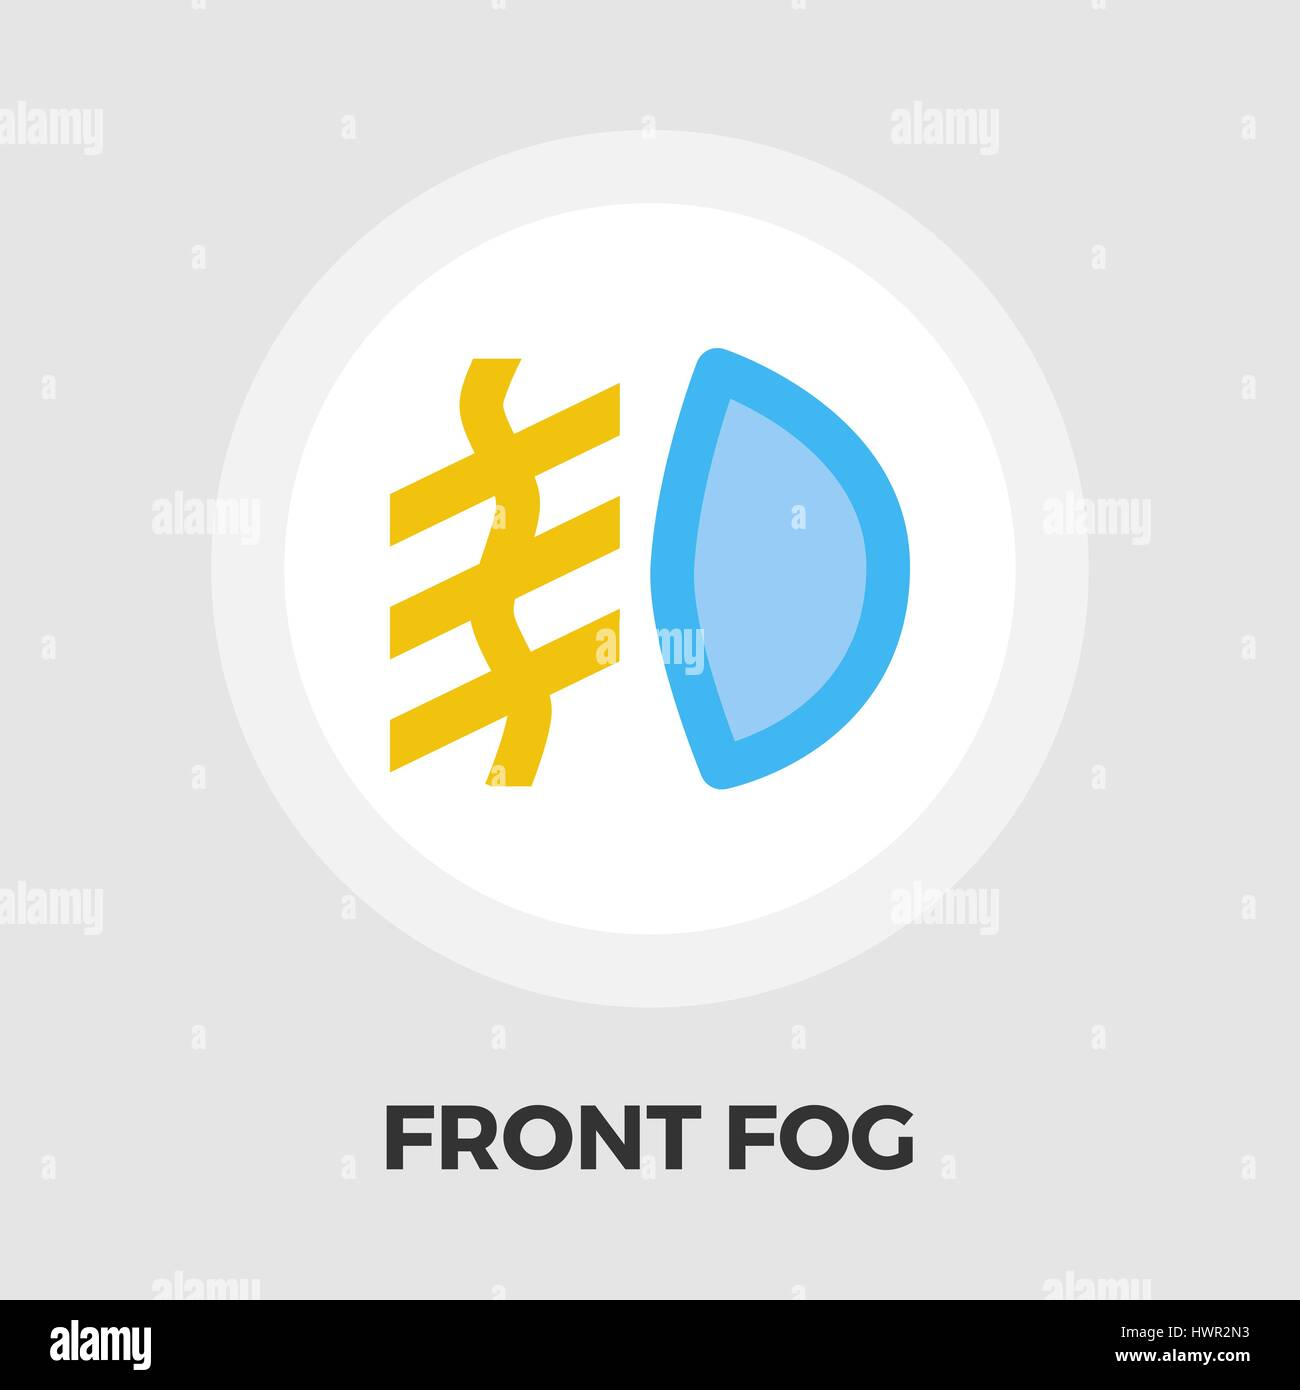 Front fog light icon vector. Flat icon isolated on the white background. Editable EPS file. Vector illustration. - Stock Vector